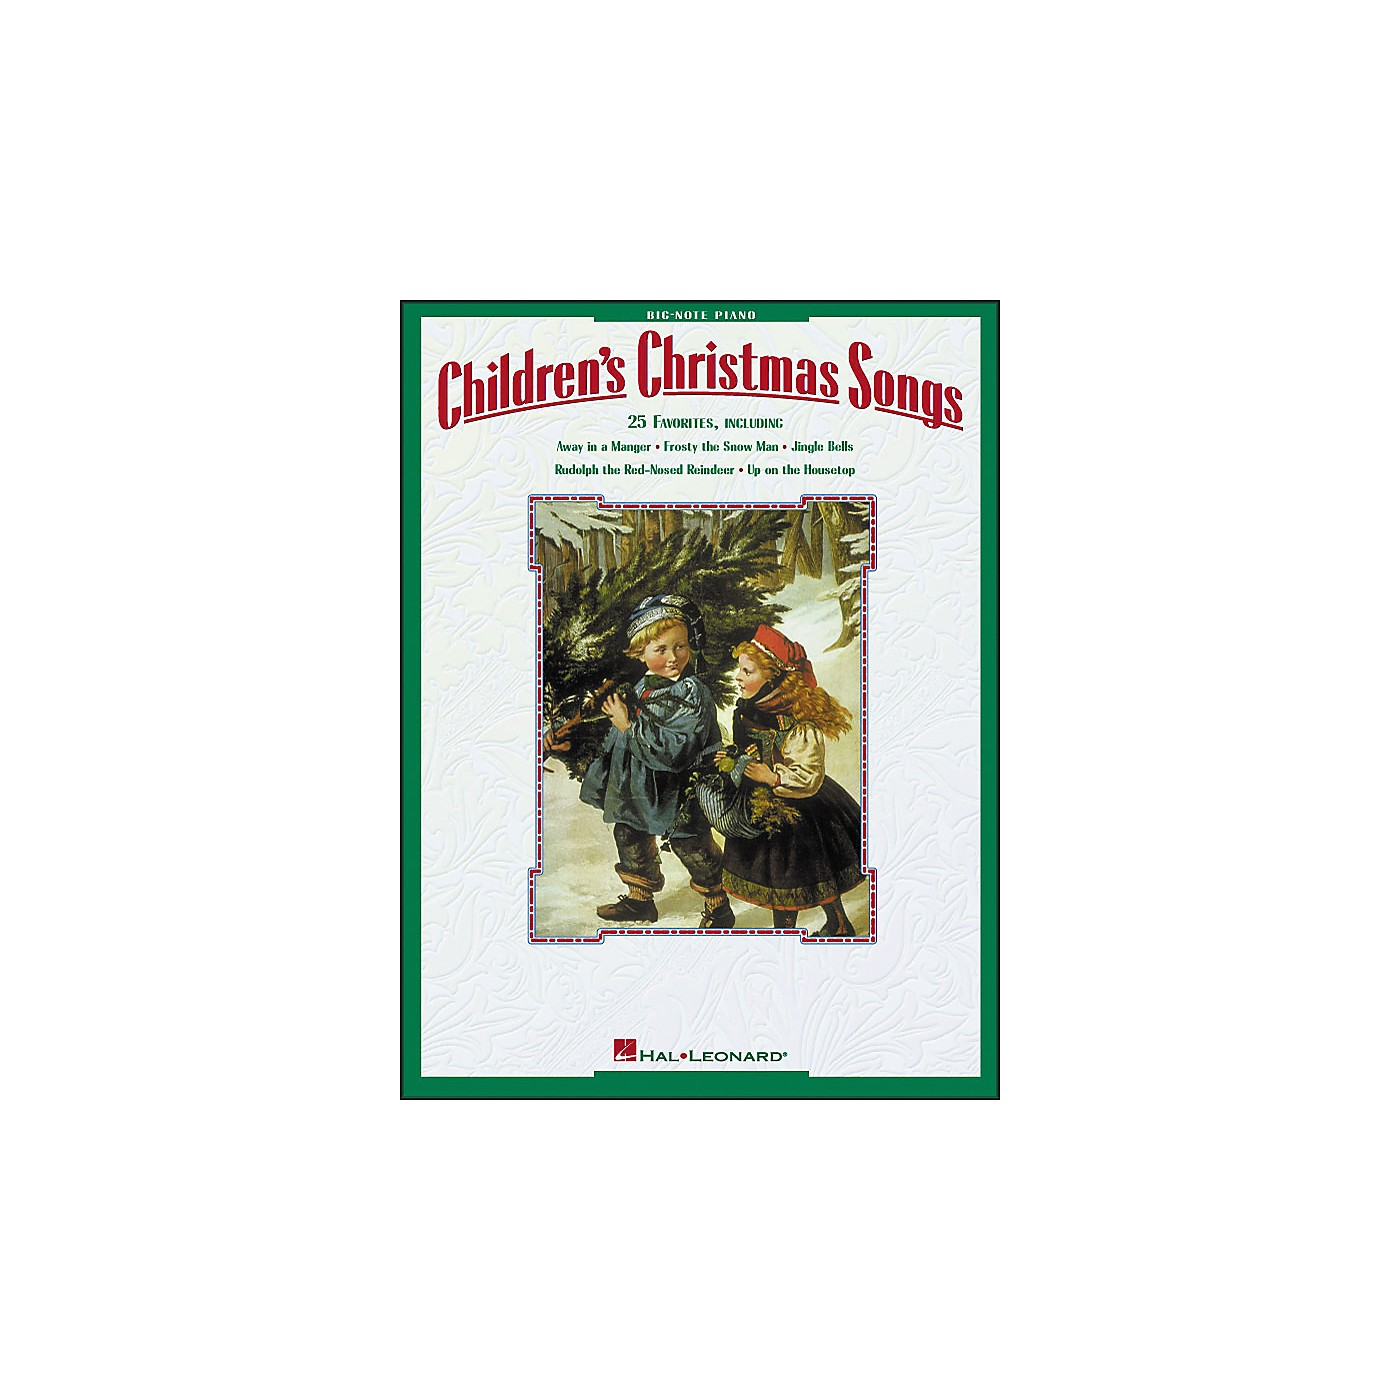 Hal Leonard Children's Christmas Songs for Big Note Piano thumbnail